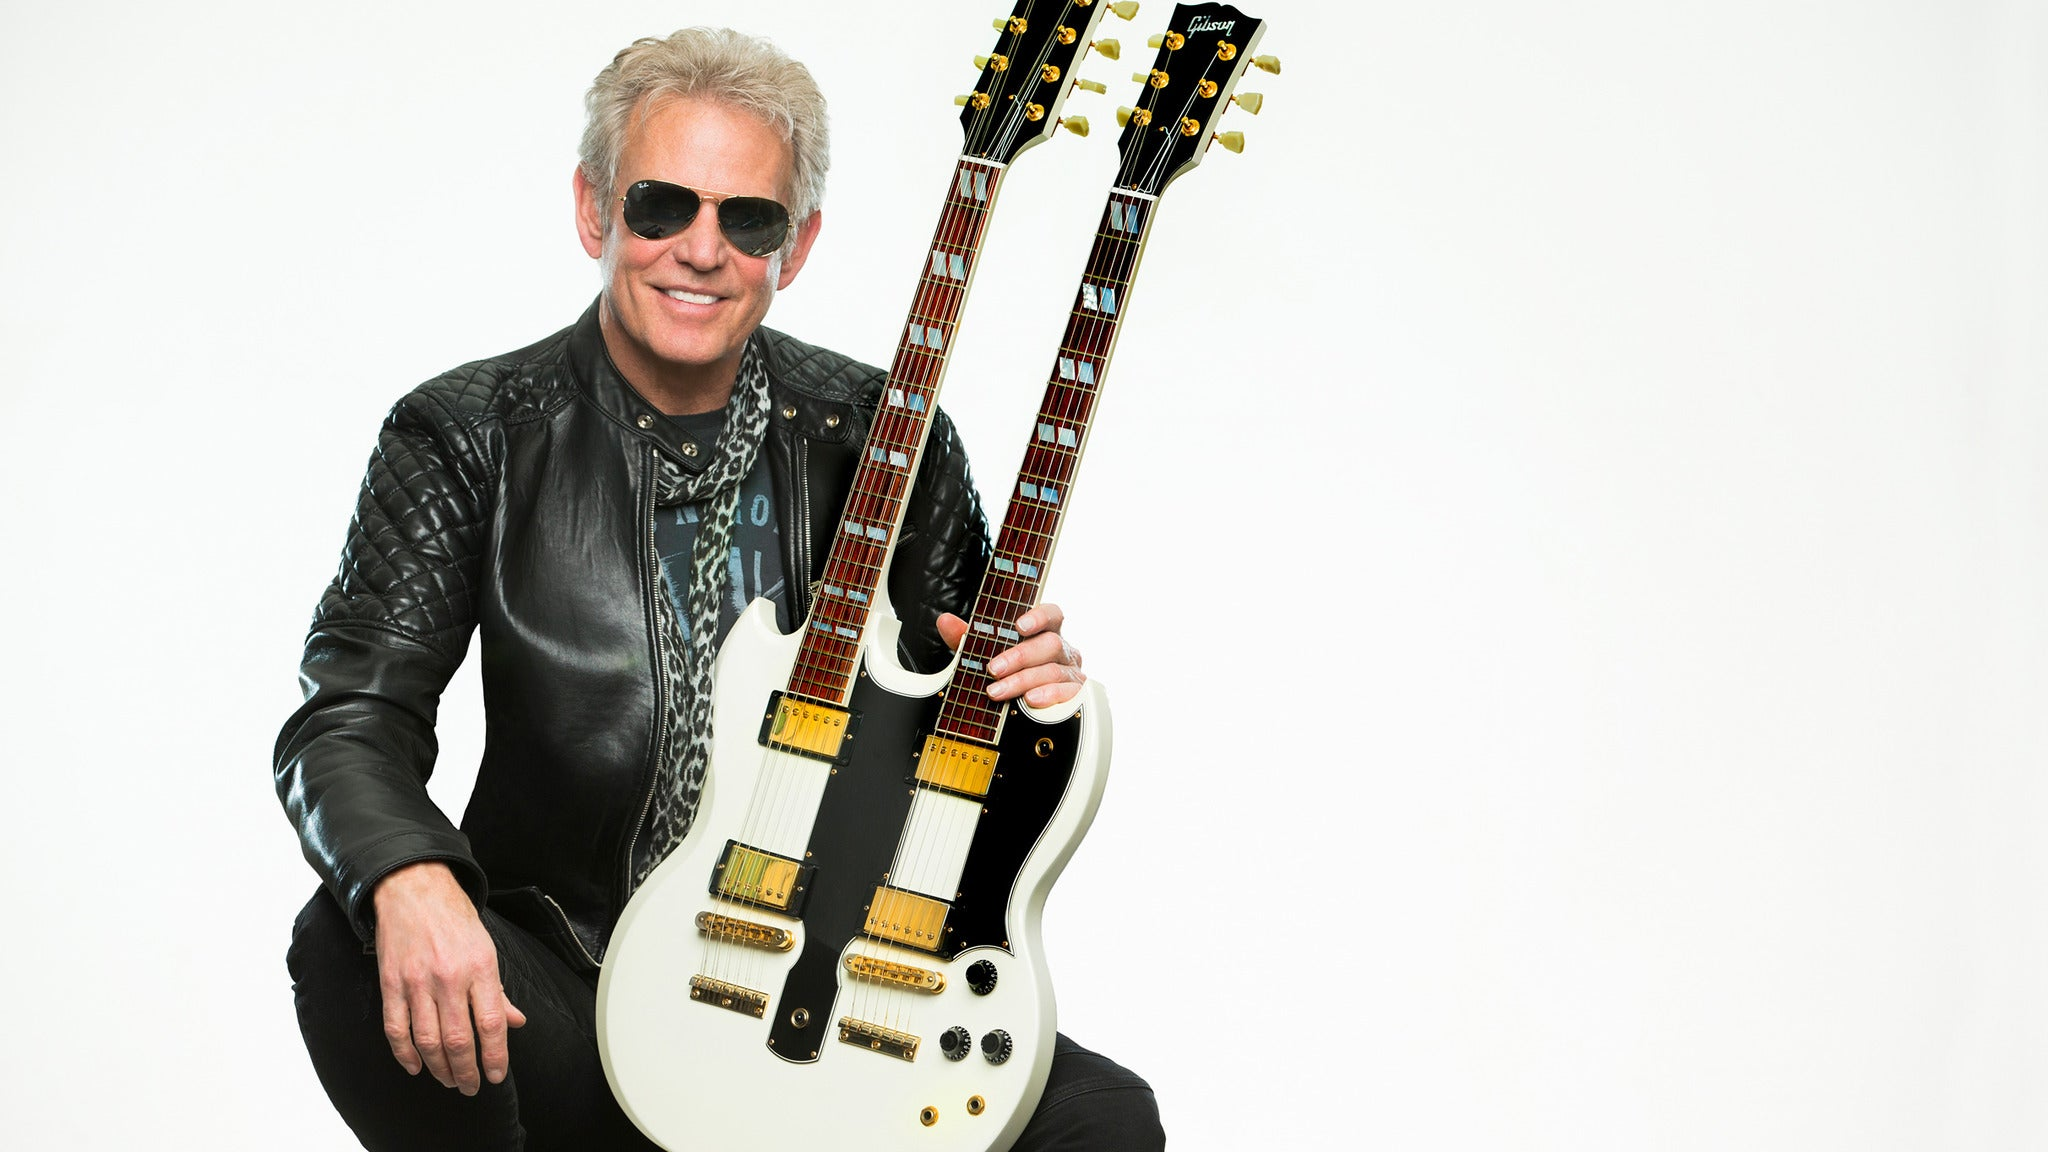 Don Felder with Little River Band, Ambrosia, and Firefall